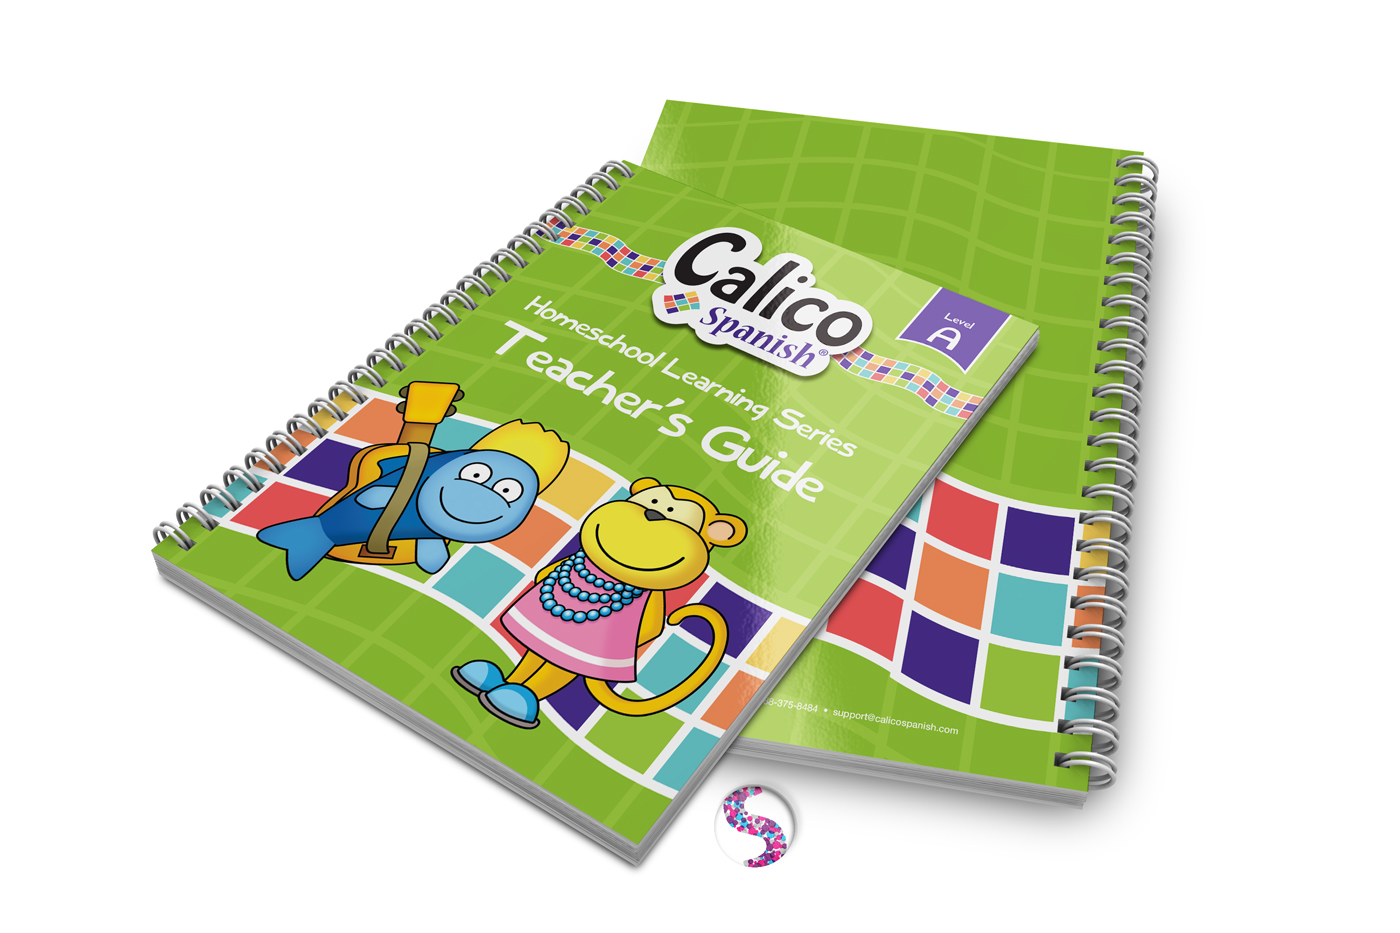 Calico Spanish Home Learning Level A on Behance